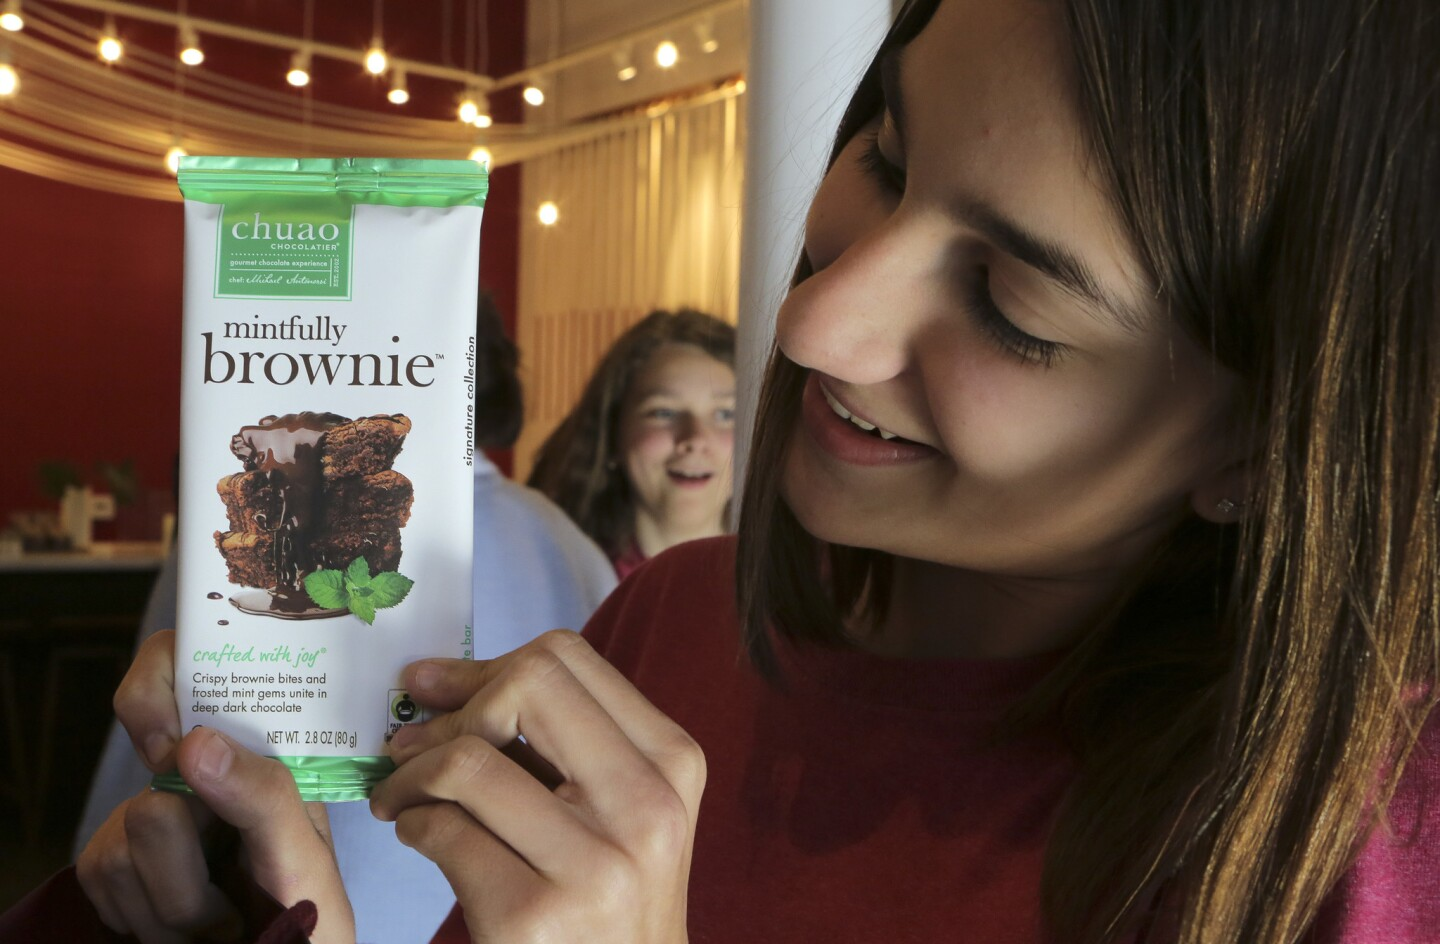 Vista Christian School seventh-grader Karlee Mejia shows off a Mintfully Brownie Bar during its unveiling at Chuao Chocolatier headquarters in Carlsbad on Wednesday. Her science class helped provide inspiration for the bar's ingredients as part of a class project last spring.